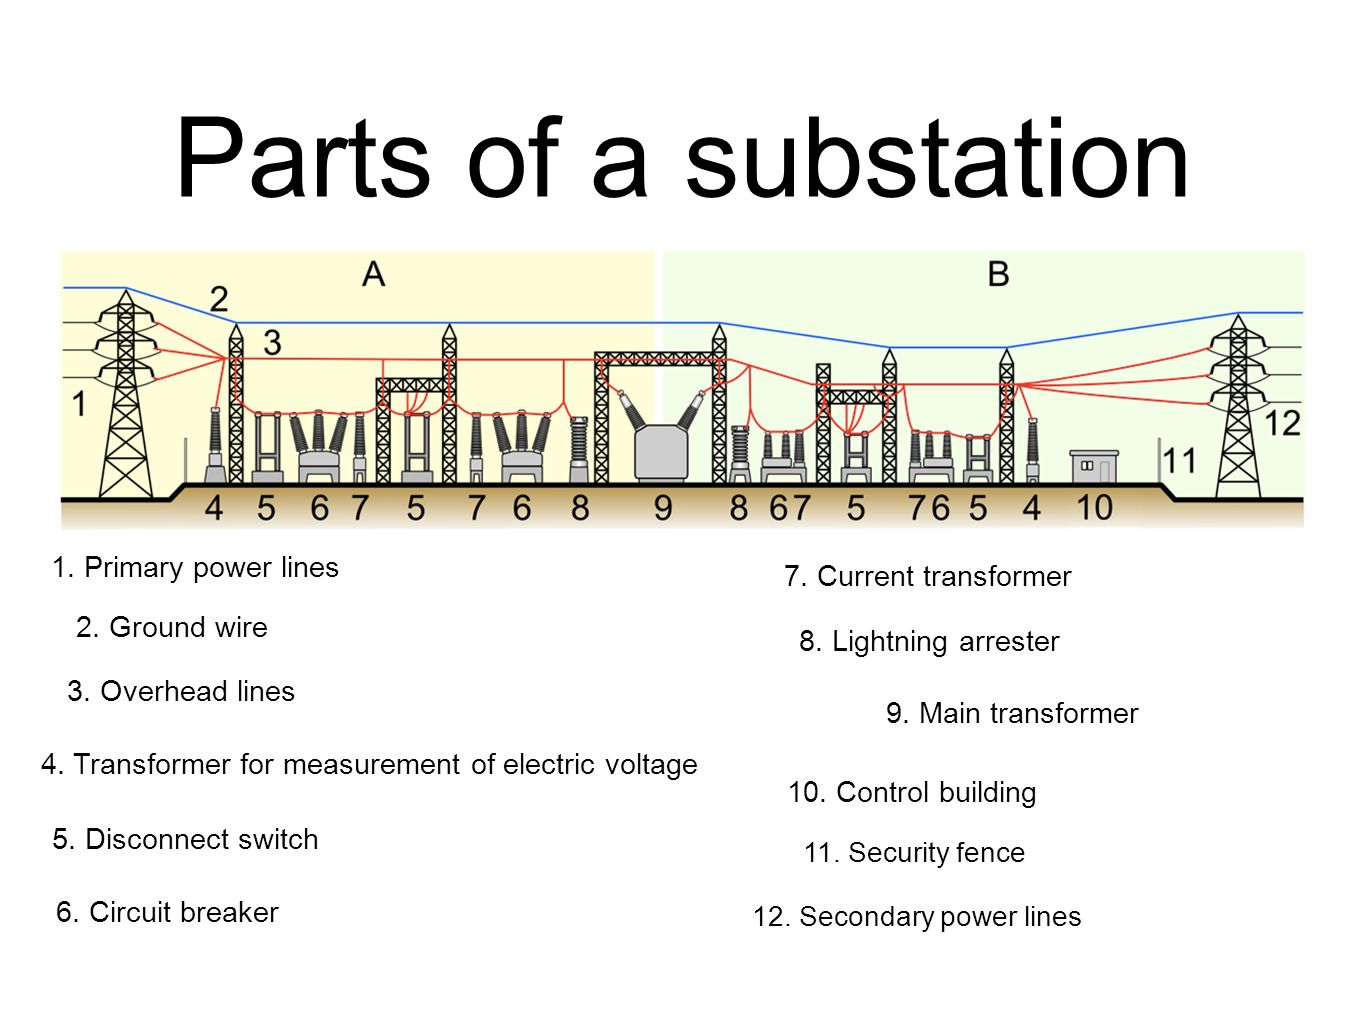 Parts of a substation 1. Primary power lines 7. Current transformer